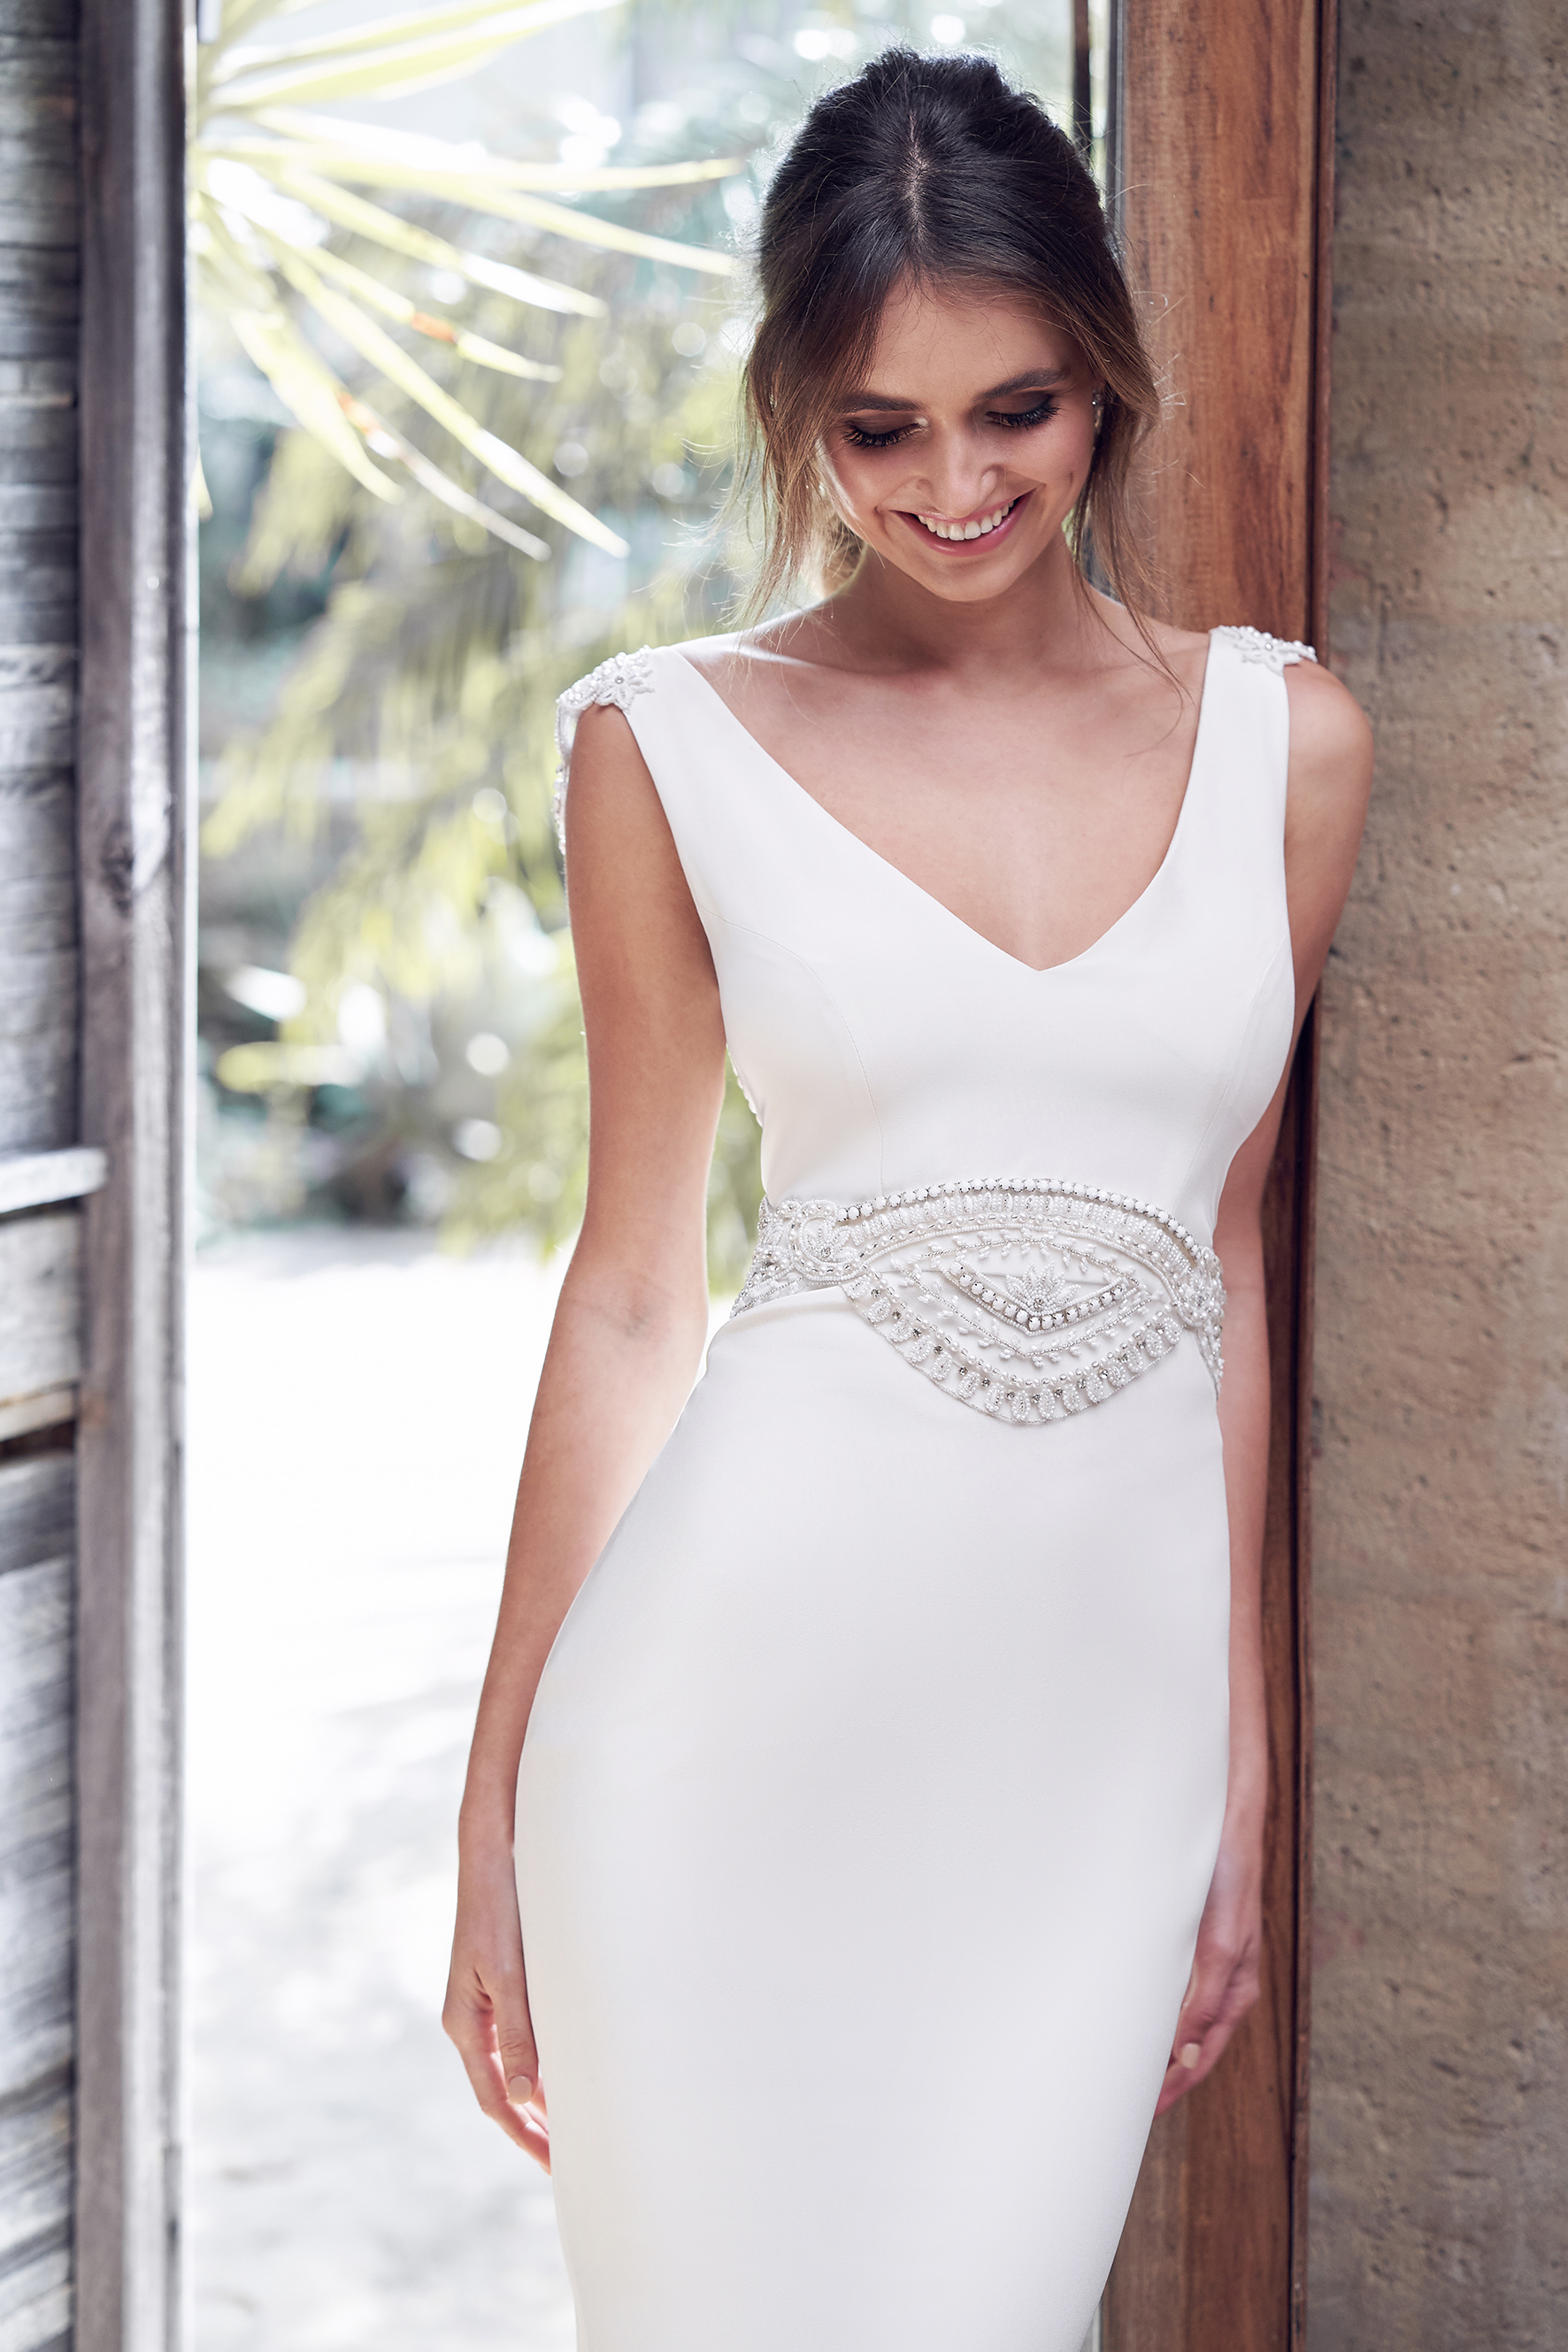 Anna Campbell Bridal | Wanderlust Collection | Blake Dress | orders@annacampbell.com.au